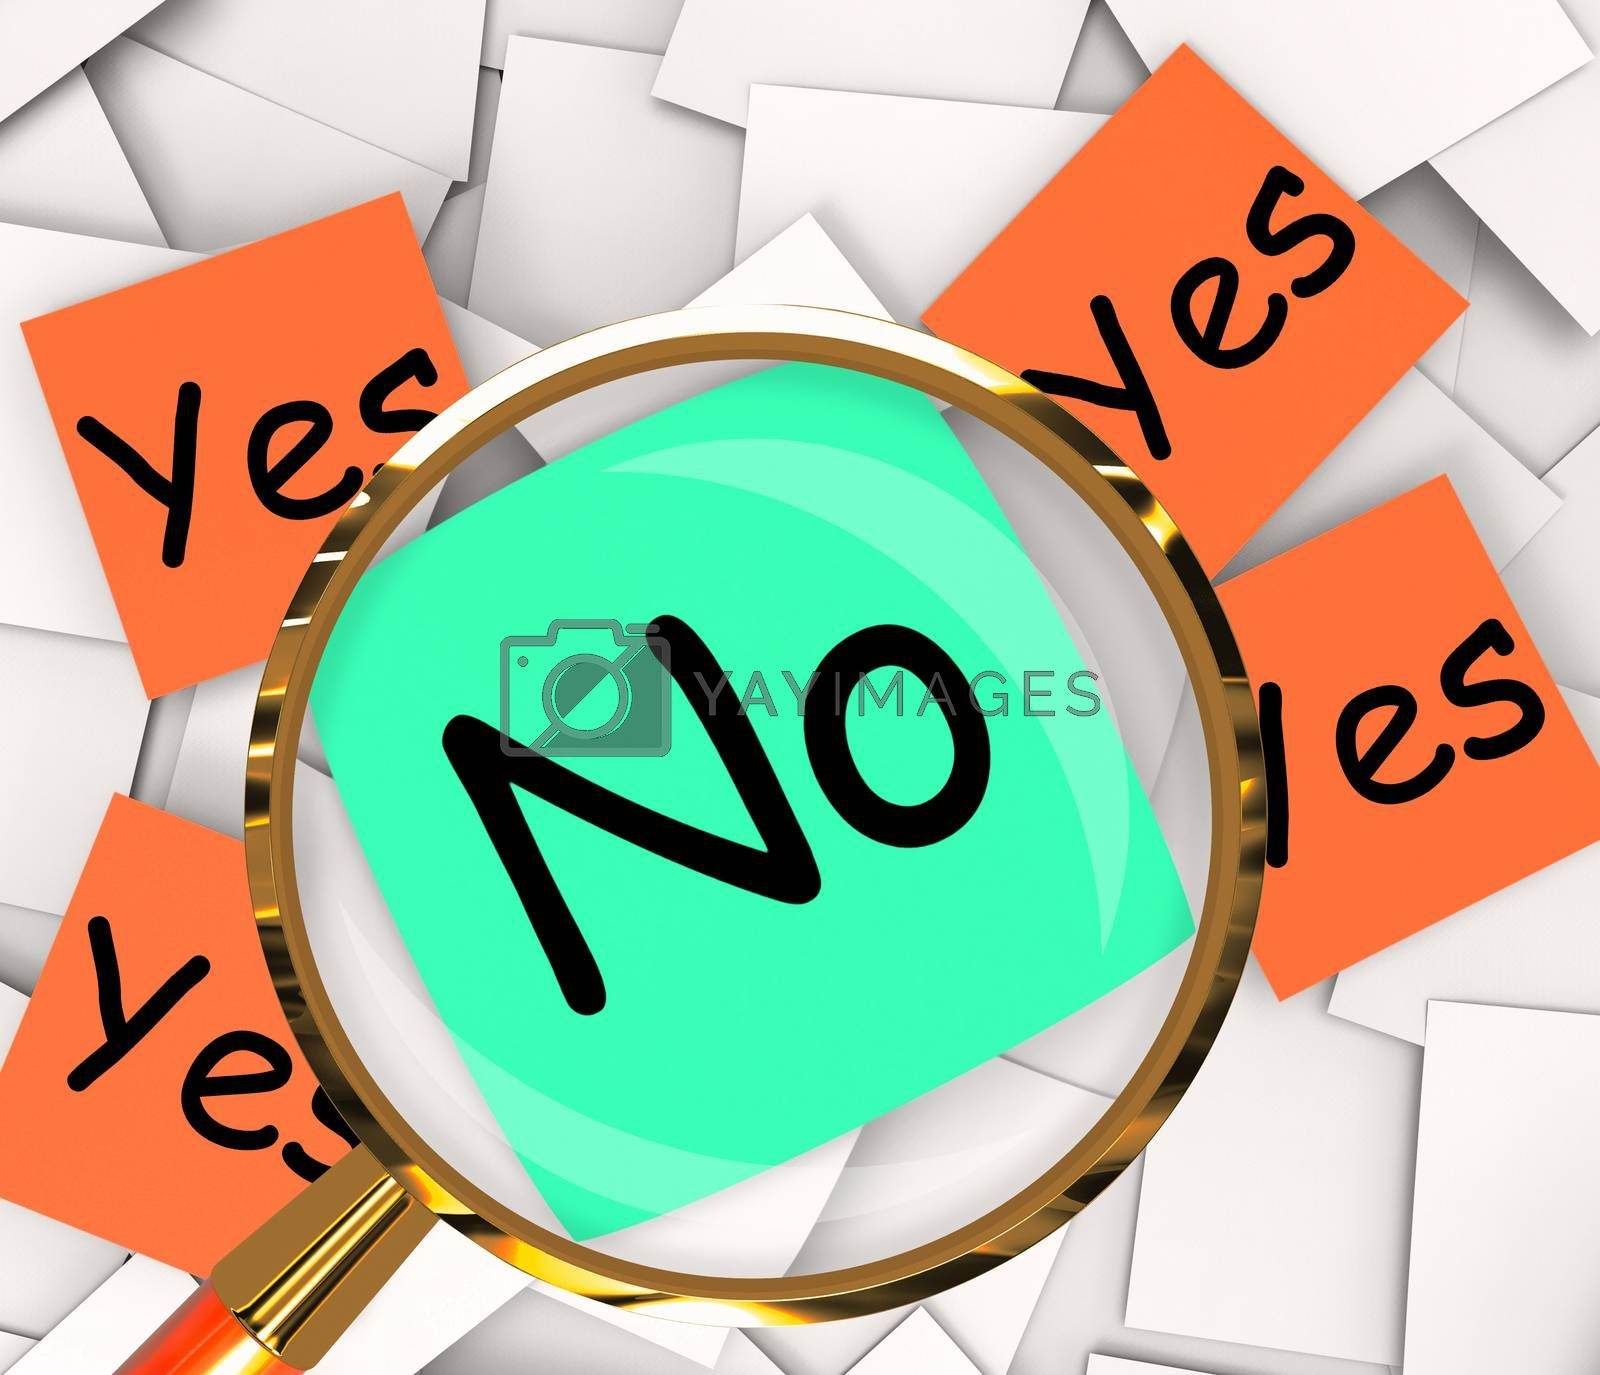 Yes No Post-It Papers Show Affirmative Or Negative by stuartmiles